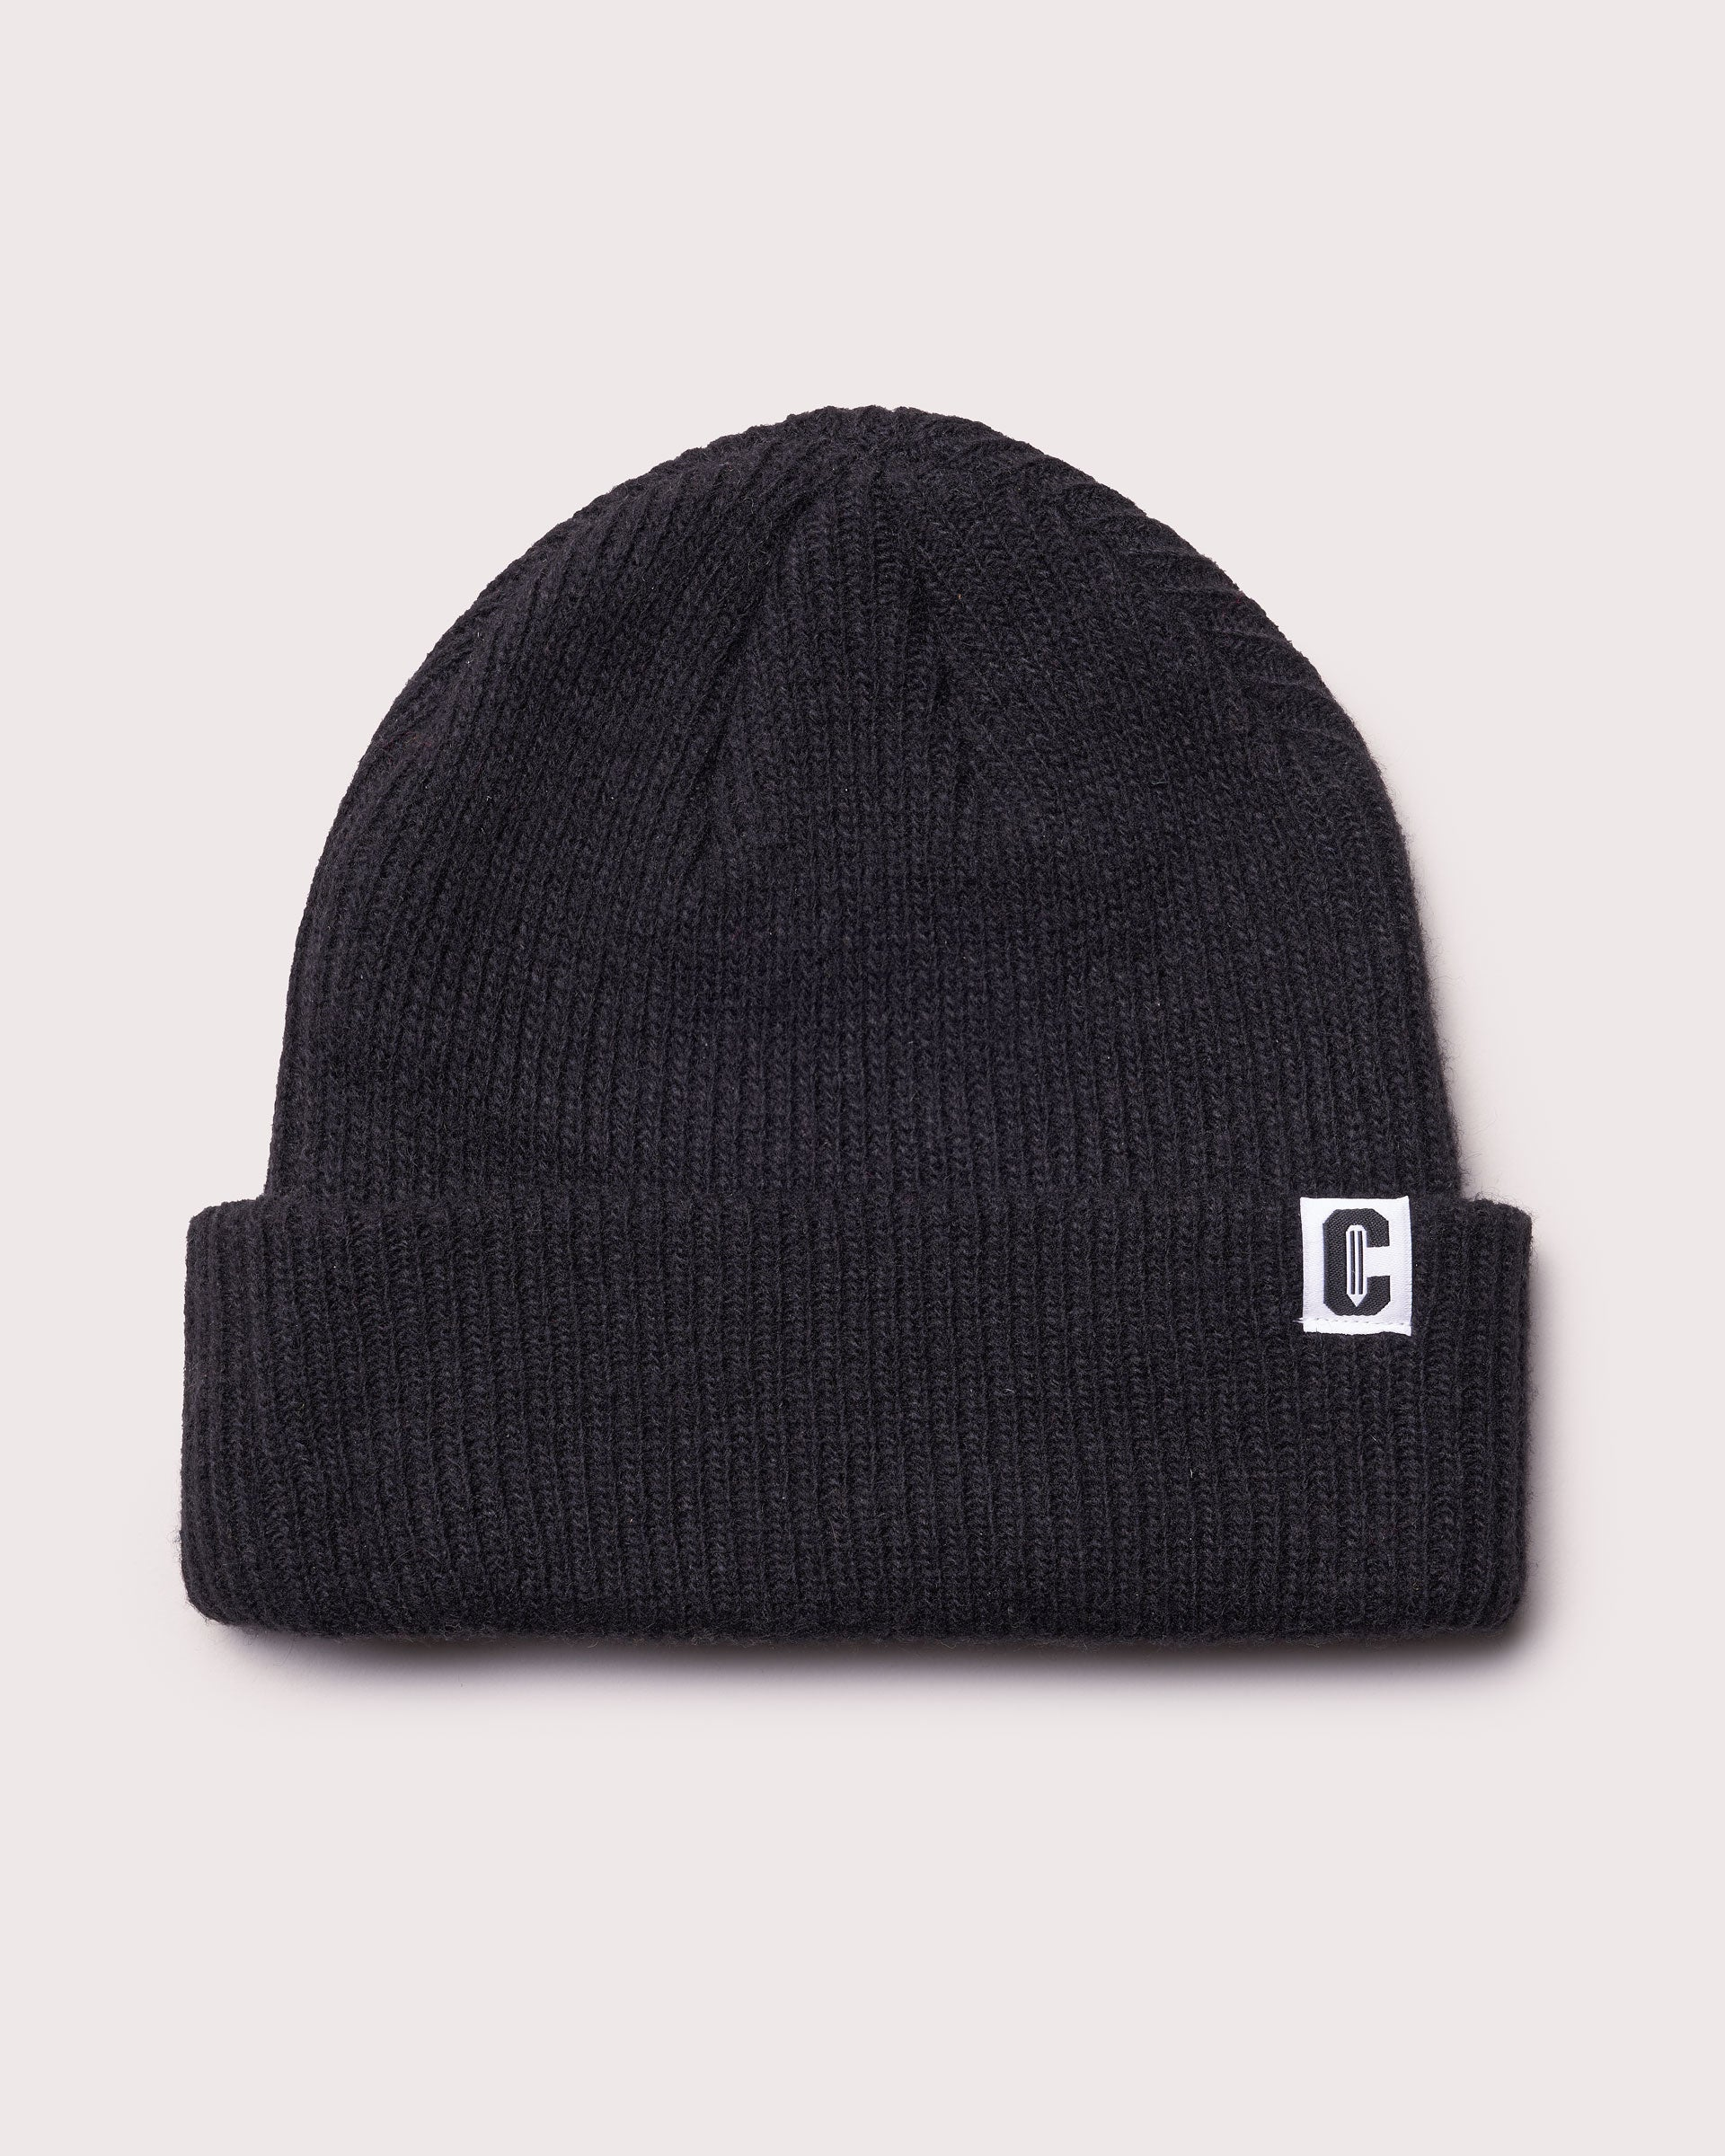 A black merino wool cuffed beanie with a woven label featuring the Coursework C logo.